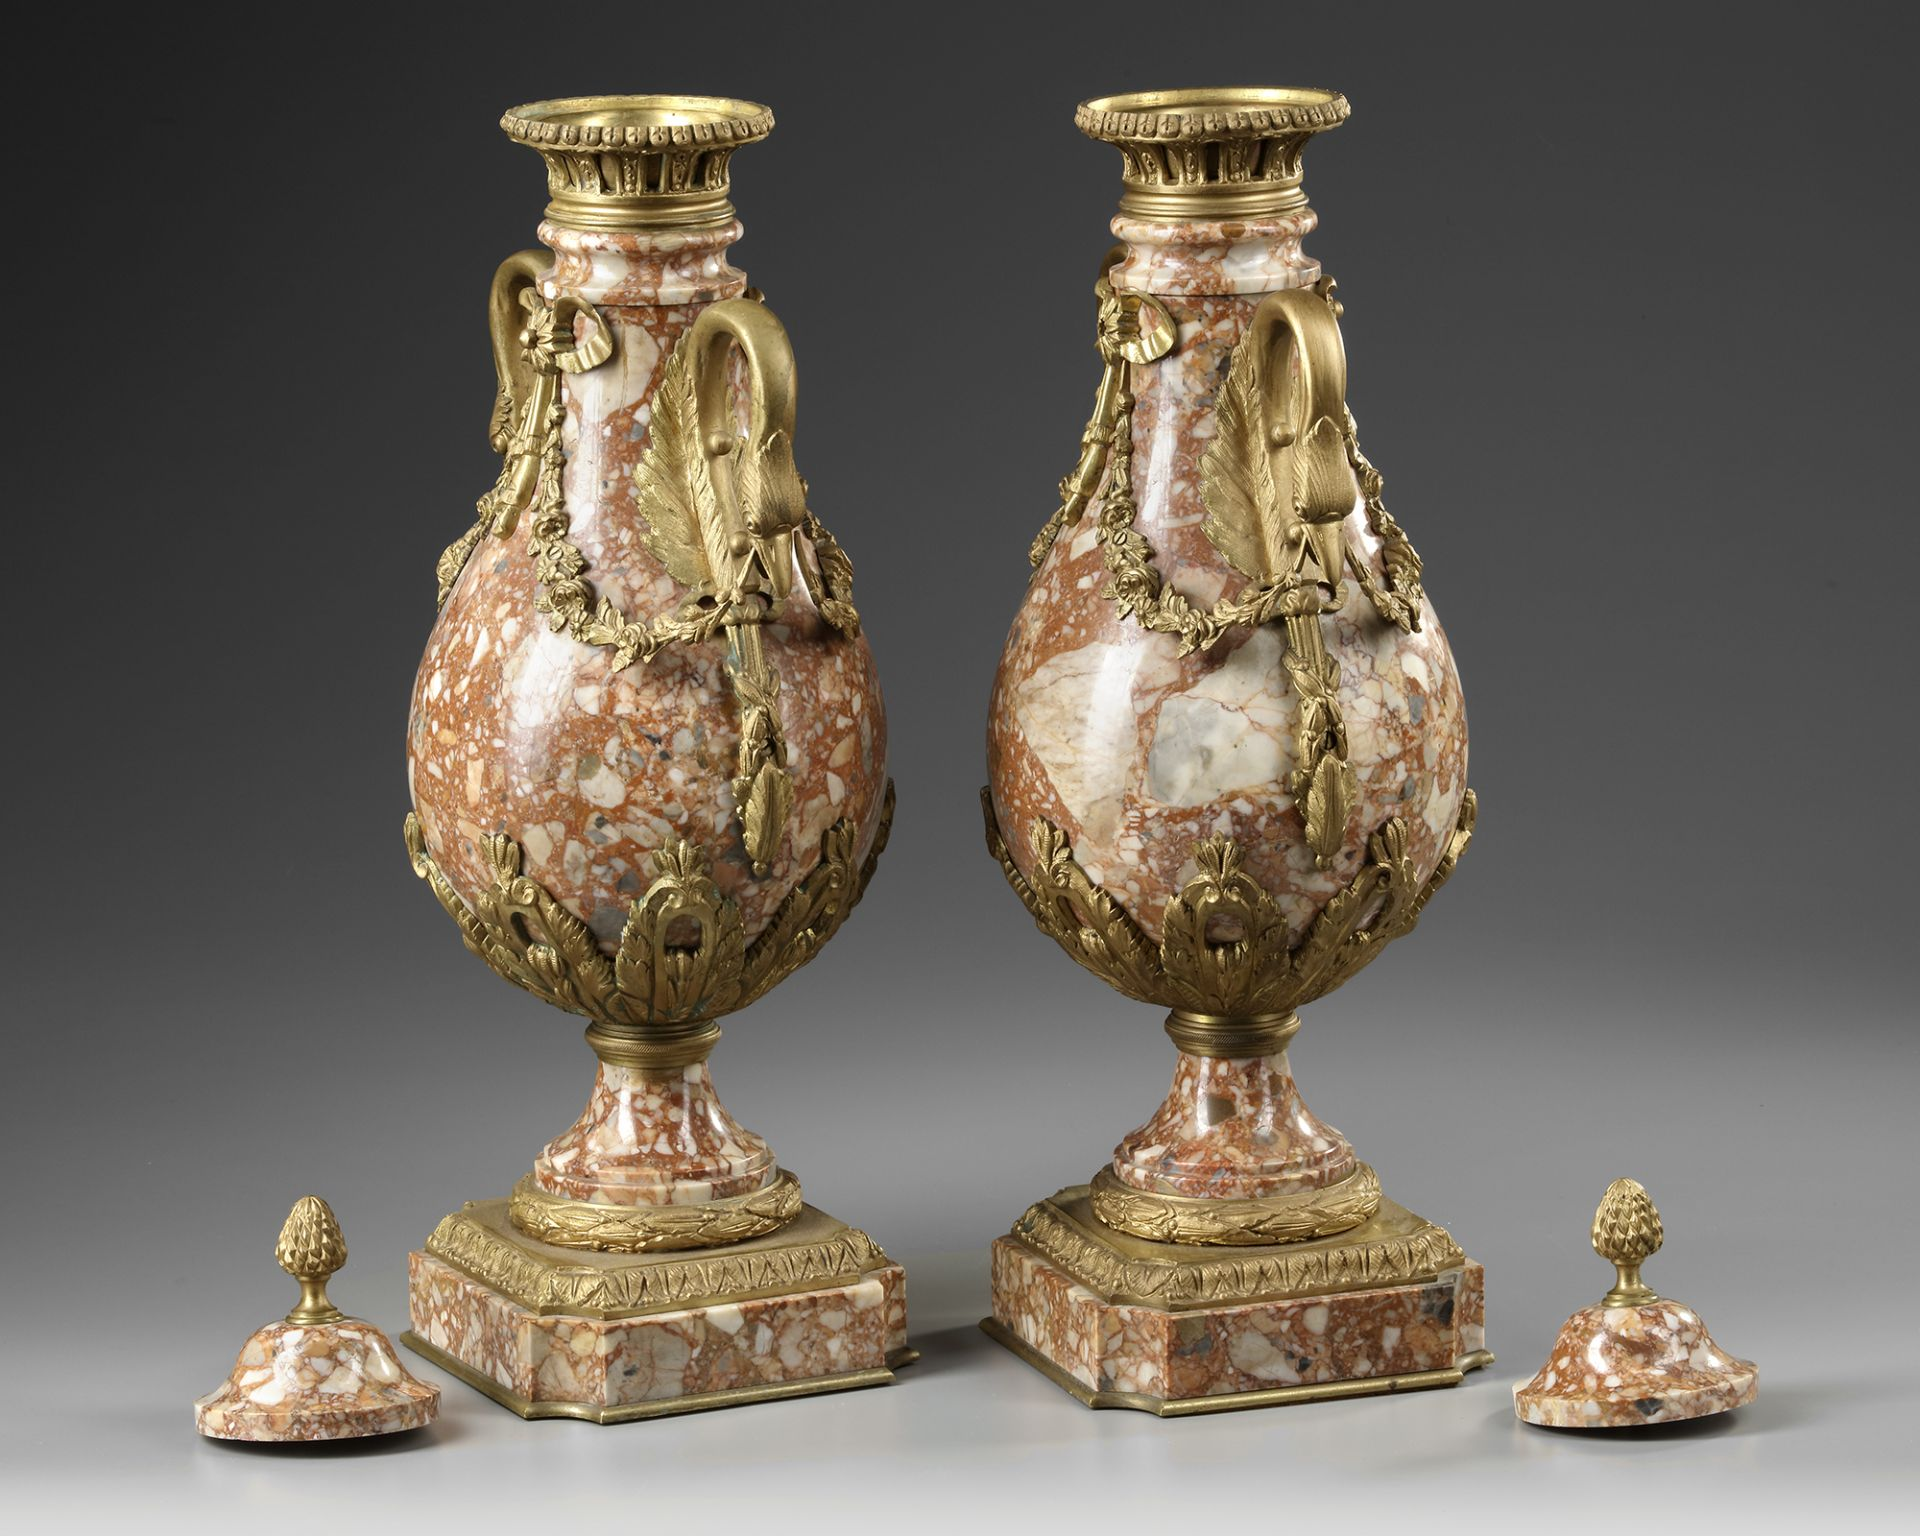 A PAIR OF MARBLE CASSOLETTES, FRANCE 19TH CENTURY - Image 2 of 3